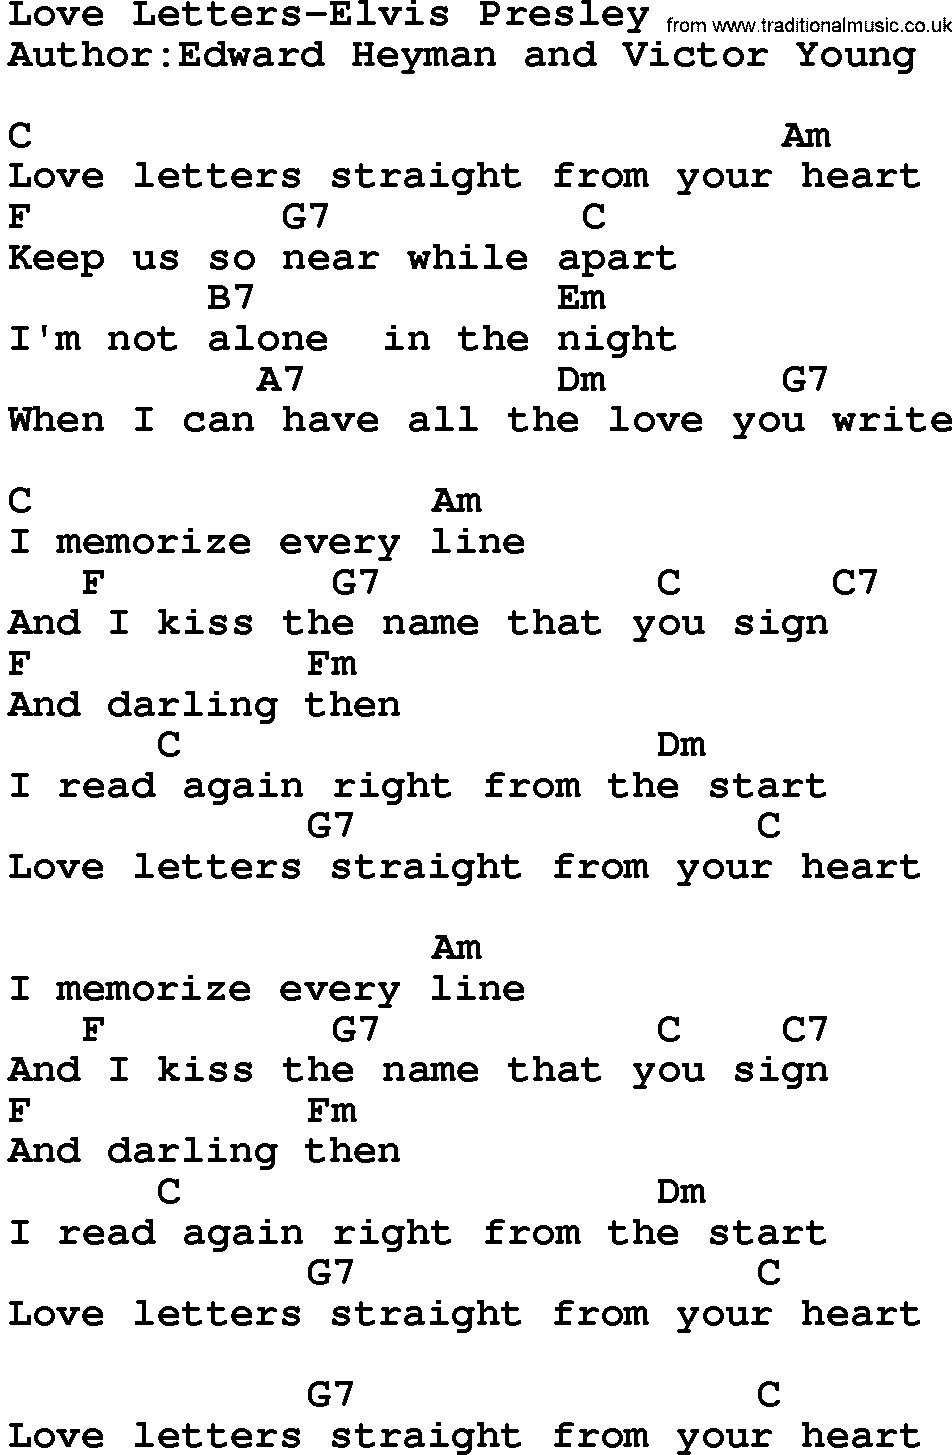 Download Love Letters-Elvis Presley lyrics and chords as PDF file (For ...